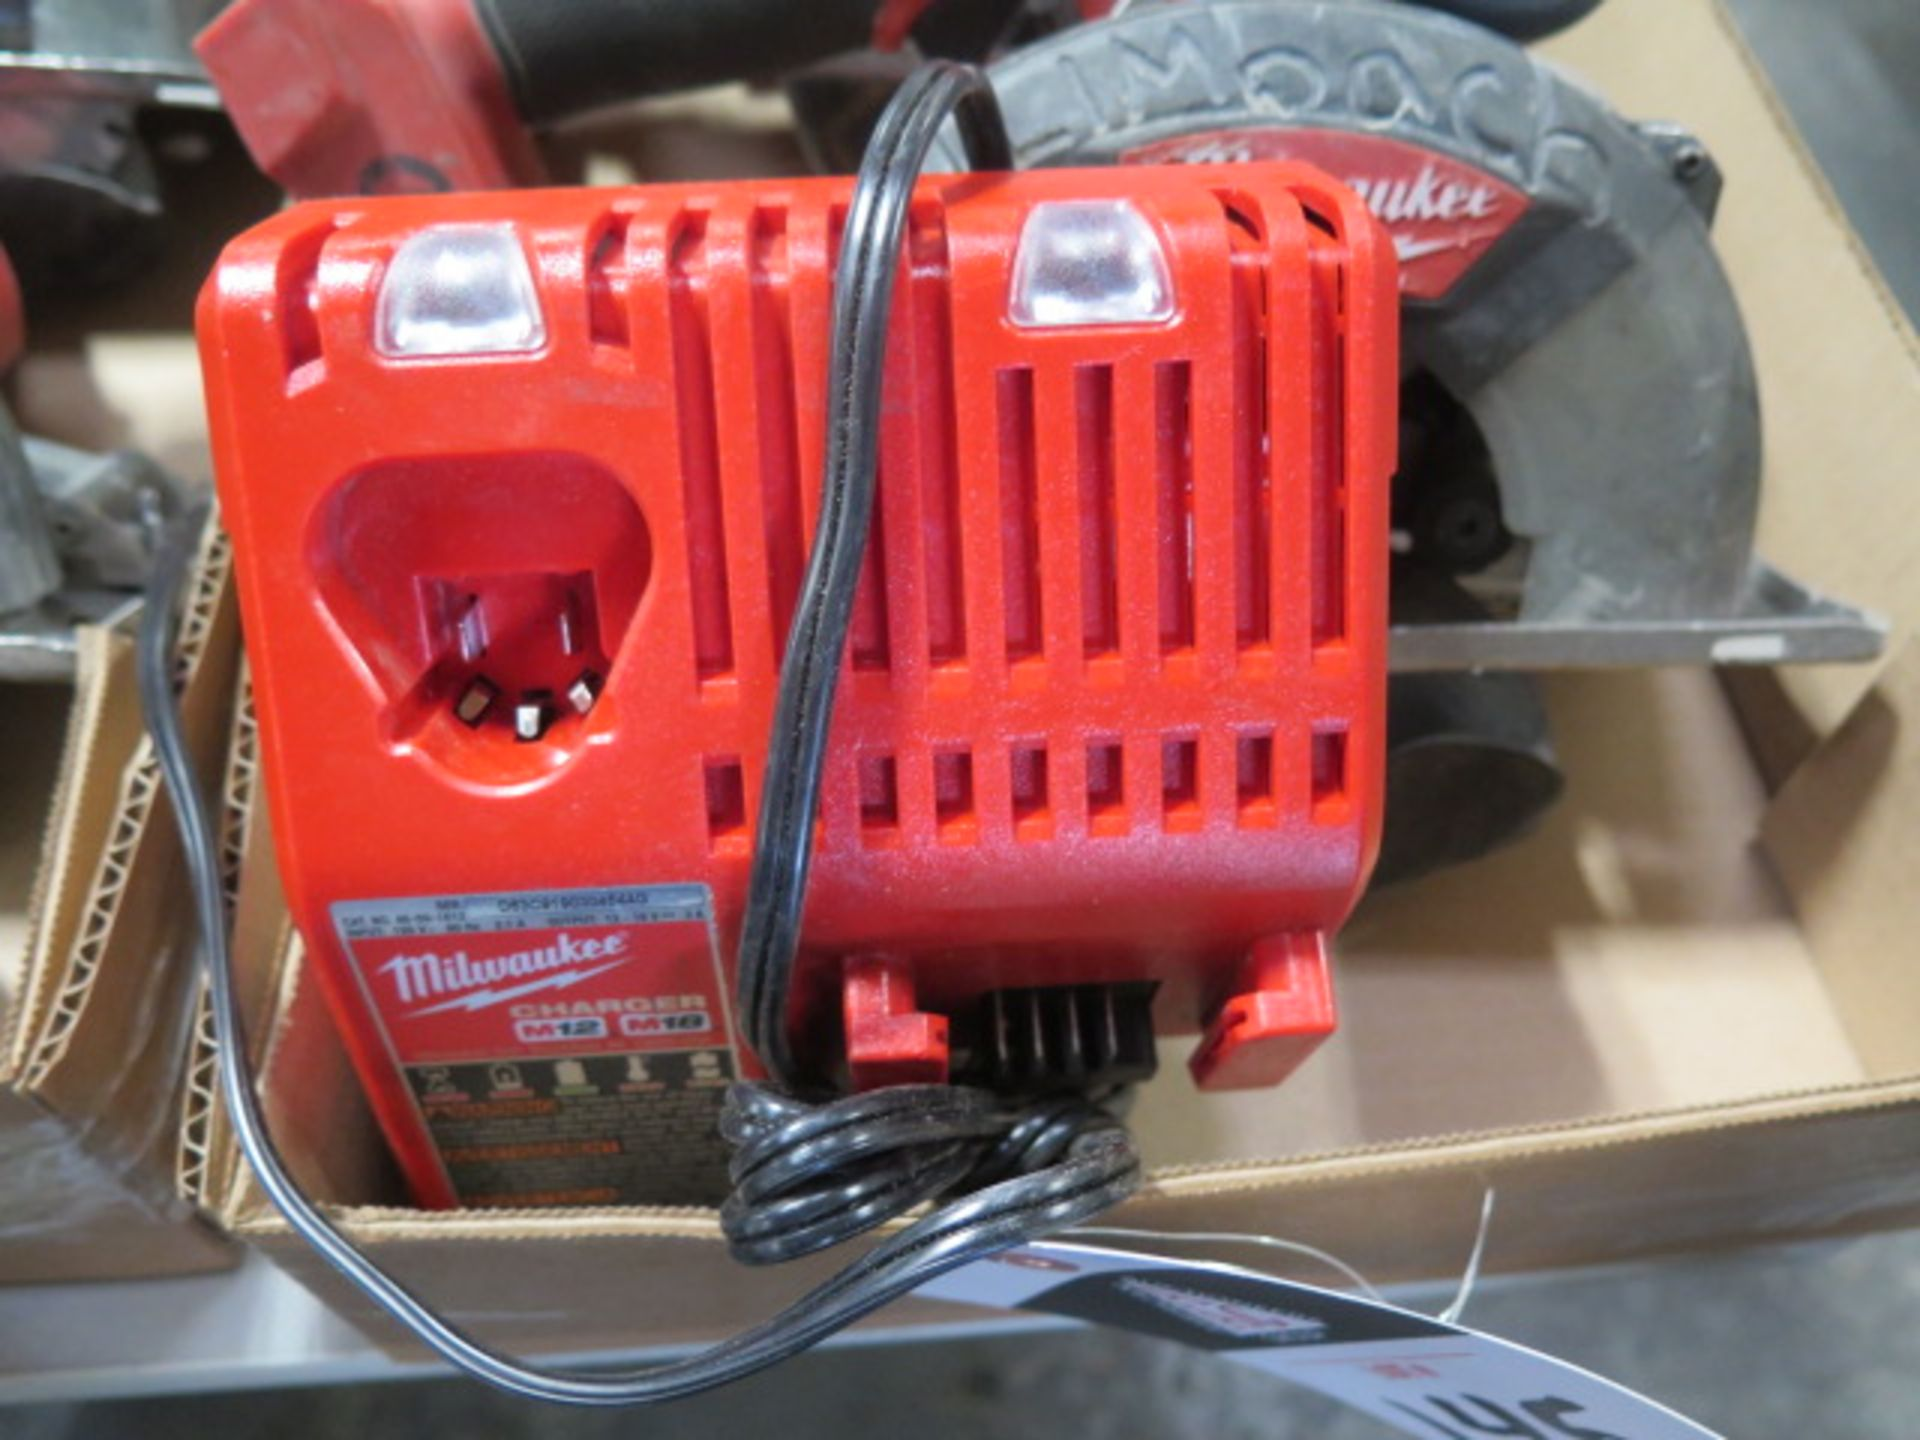 Milwaukee 18 Volt Circular Saws (2) (SOLD AS-IS - NO WARRANTY) - Image 5 of 5